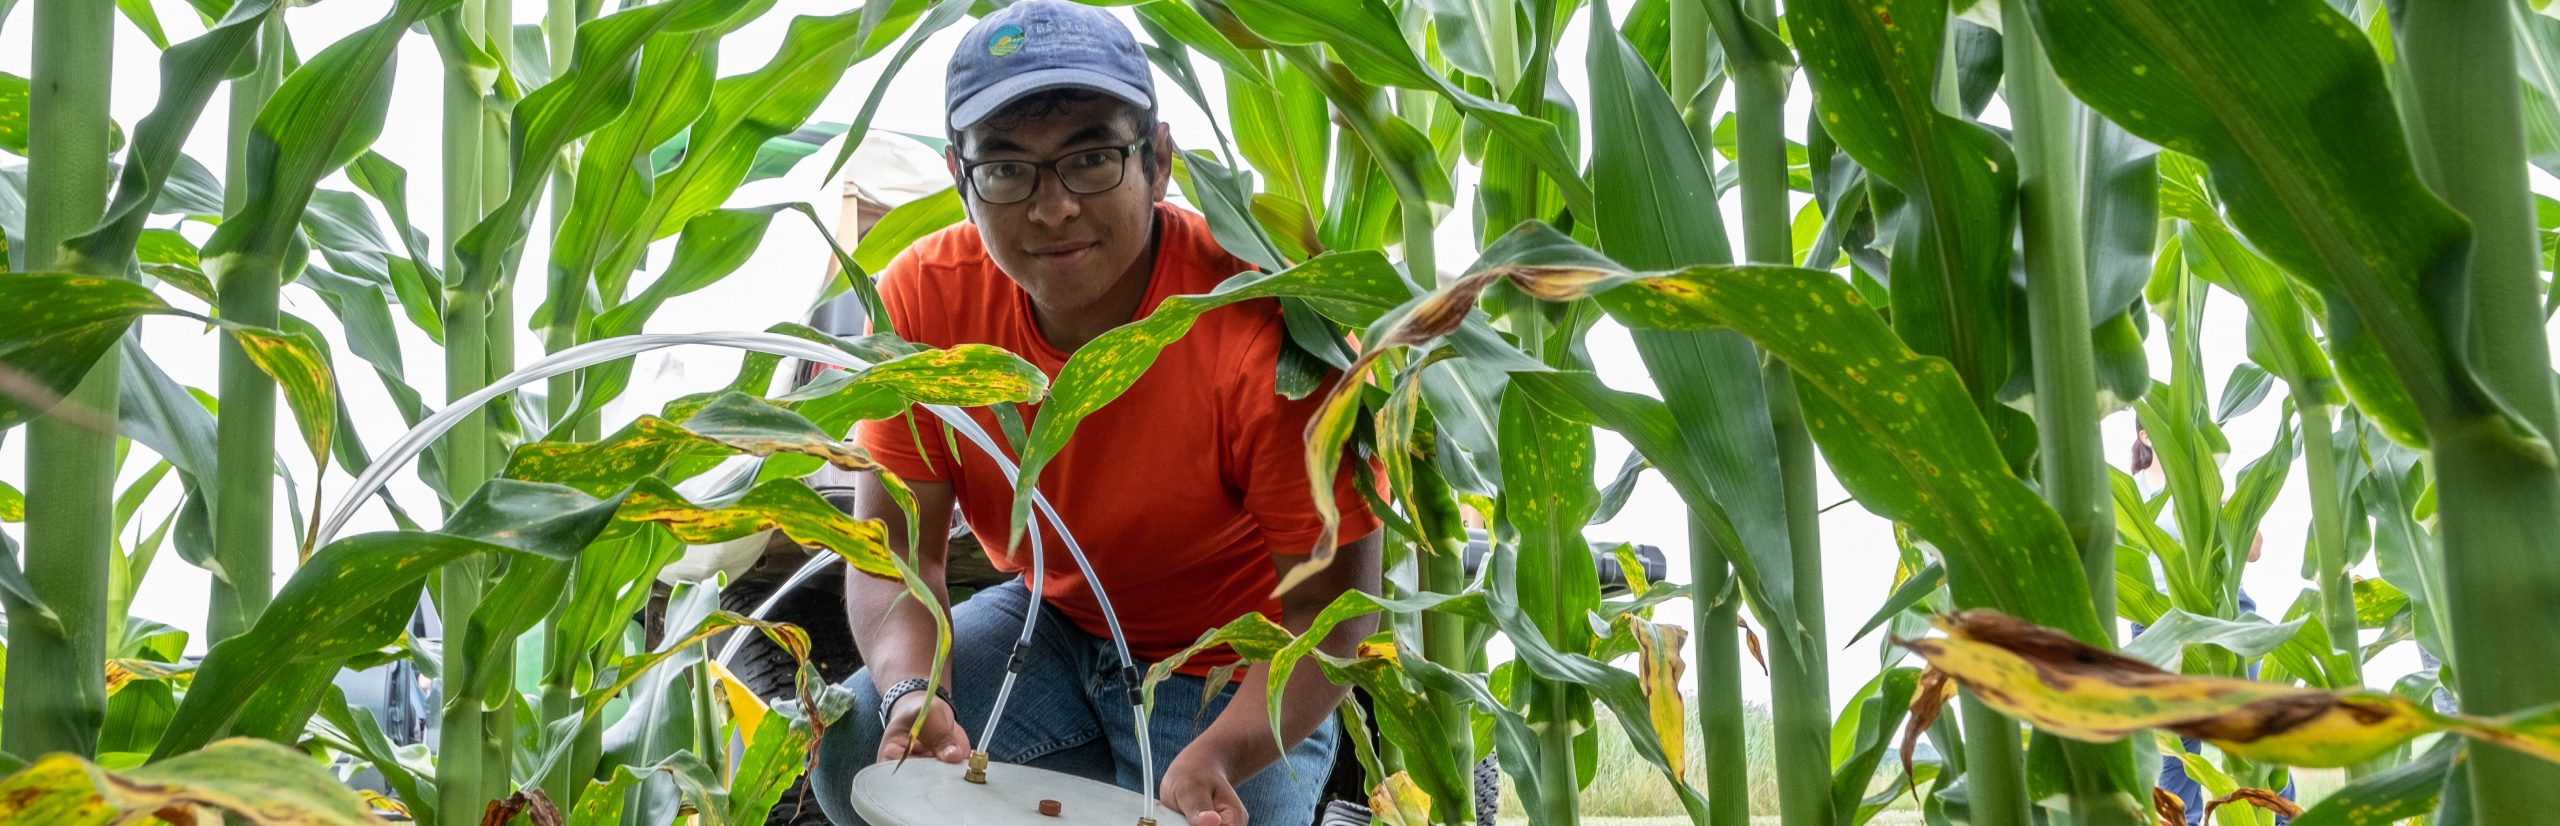 A researcher kneels between corn stalks in a field, holding research equipment and looking at the camera.